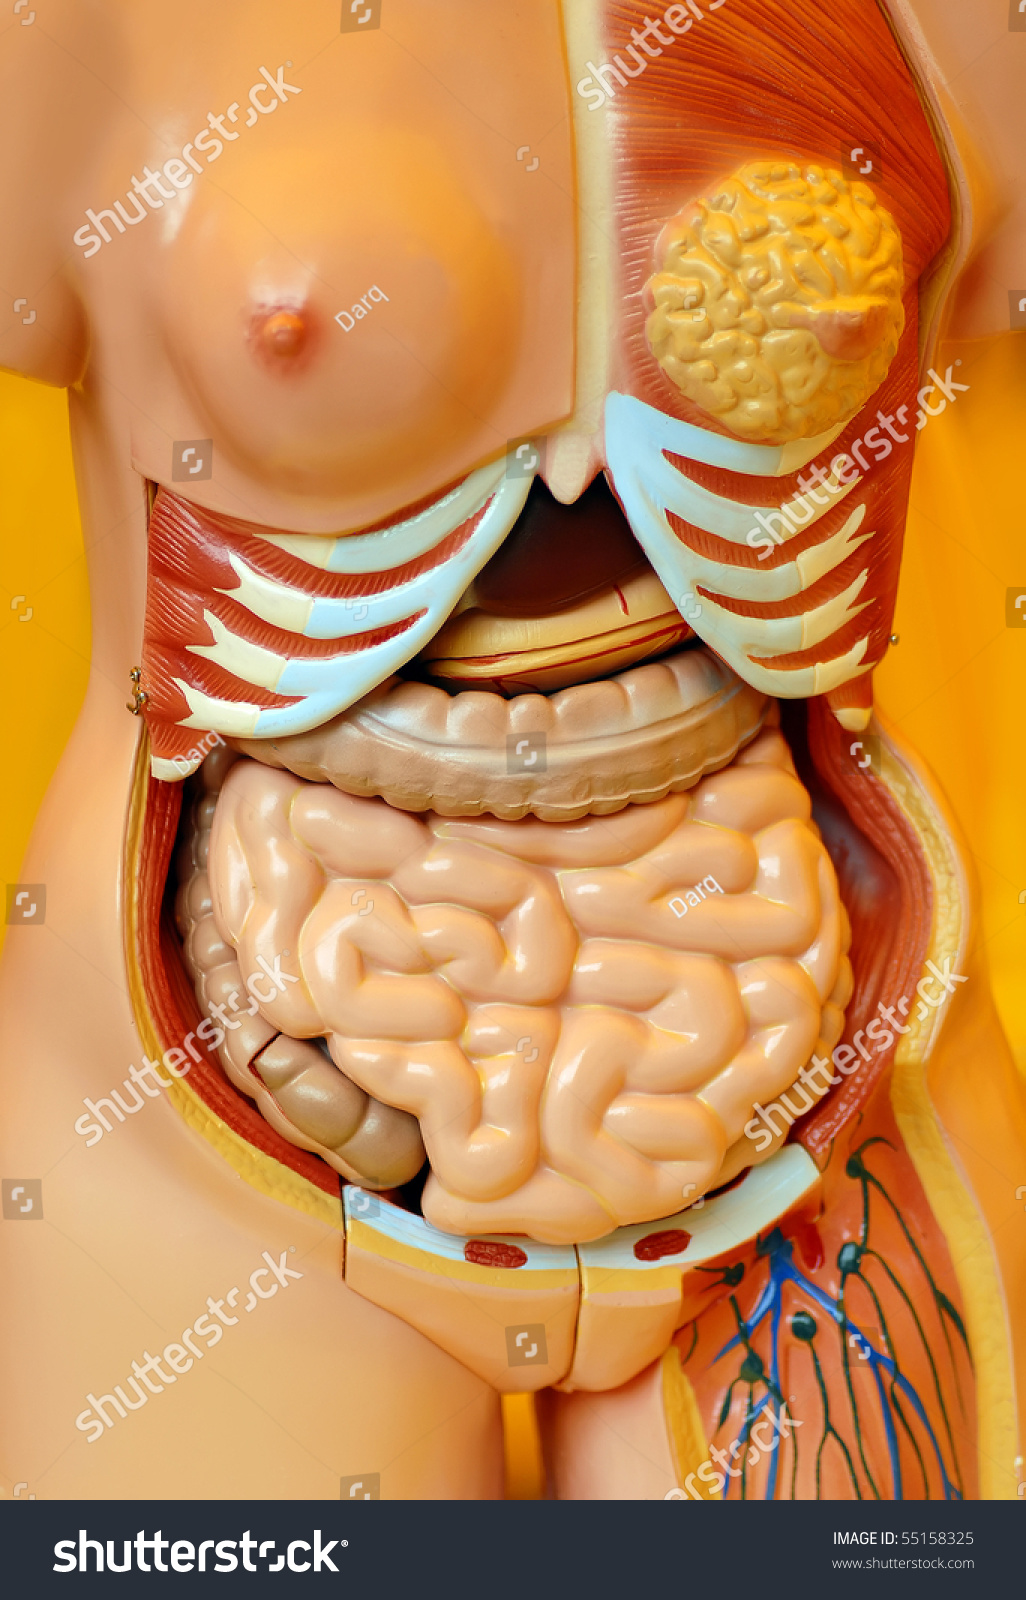 Organs Inside Female Body Learning Artificial Stock Photo (Royalty ...